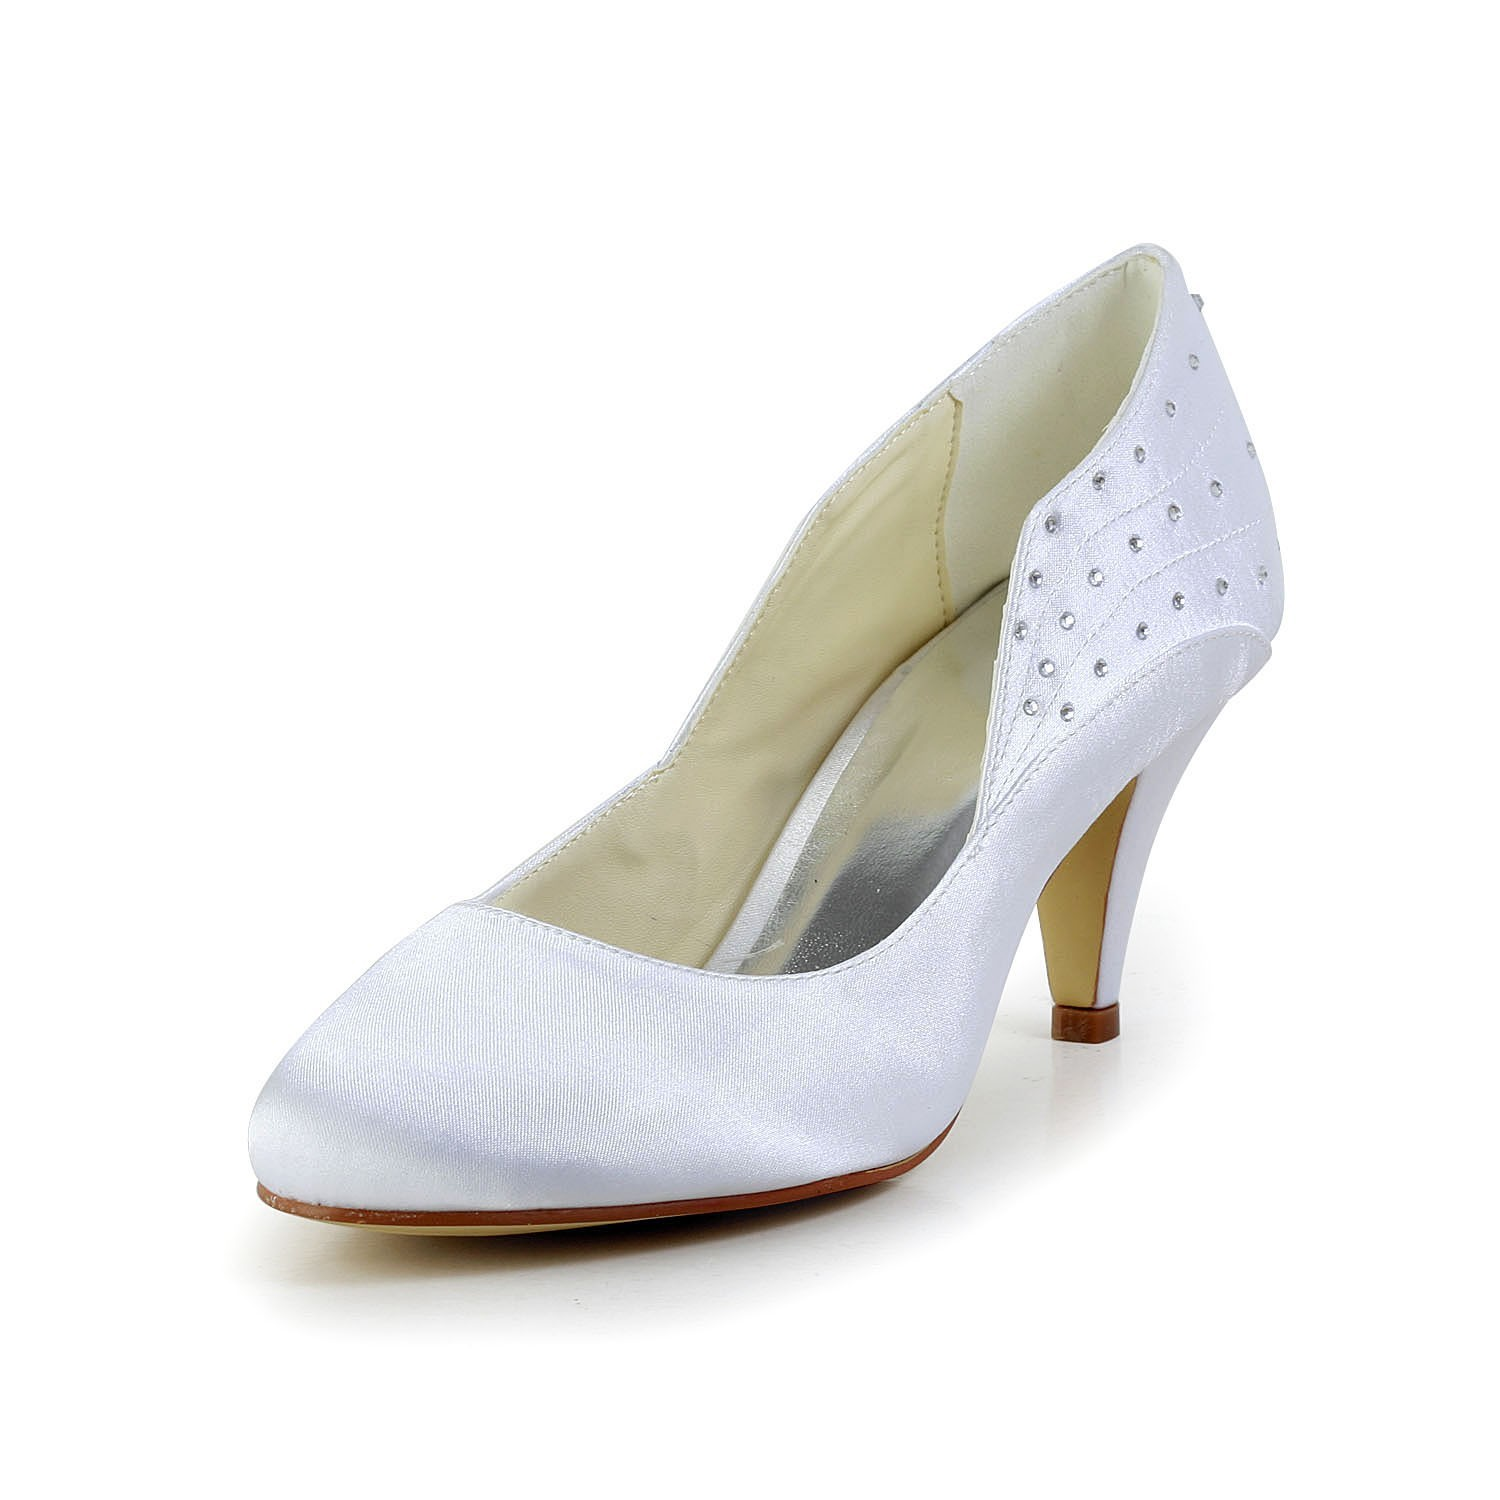 918e5ef64 Women s Simple Satin Closed Toe Cone Heel White Wedding Shoes With  Rhinestone